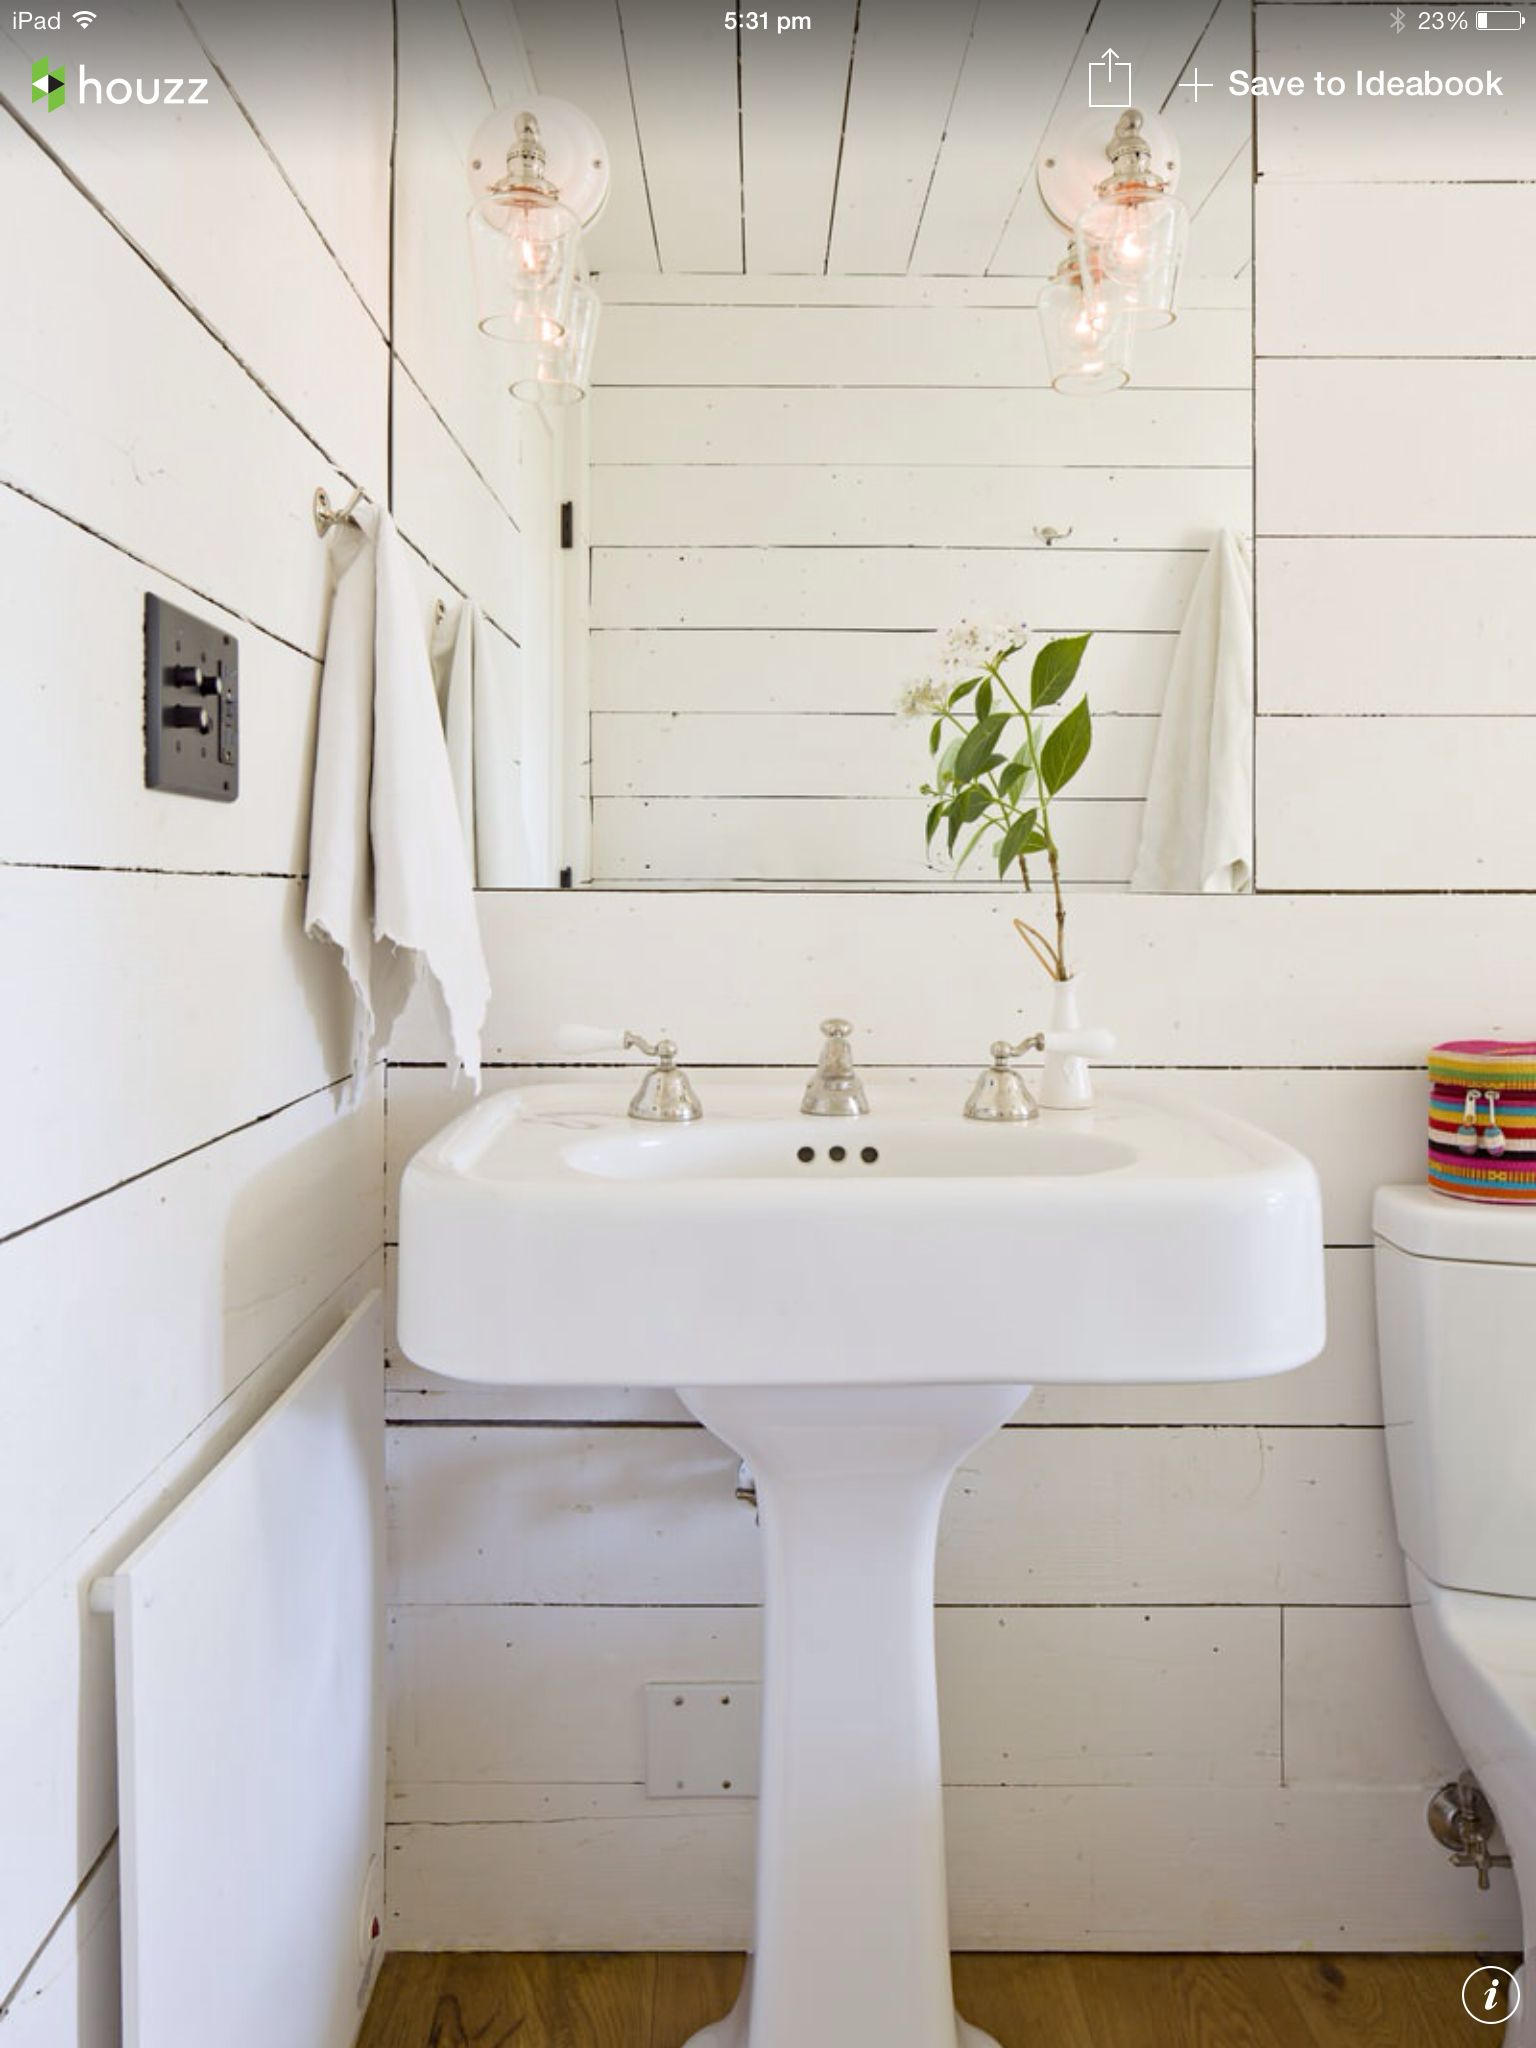 White boards - country style bathroom | Cuarto de baño | Pinterest ...